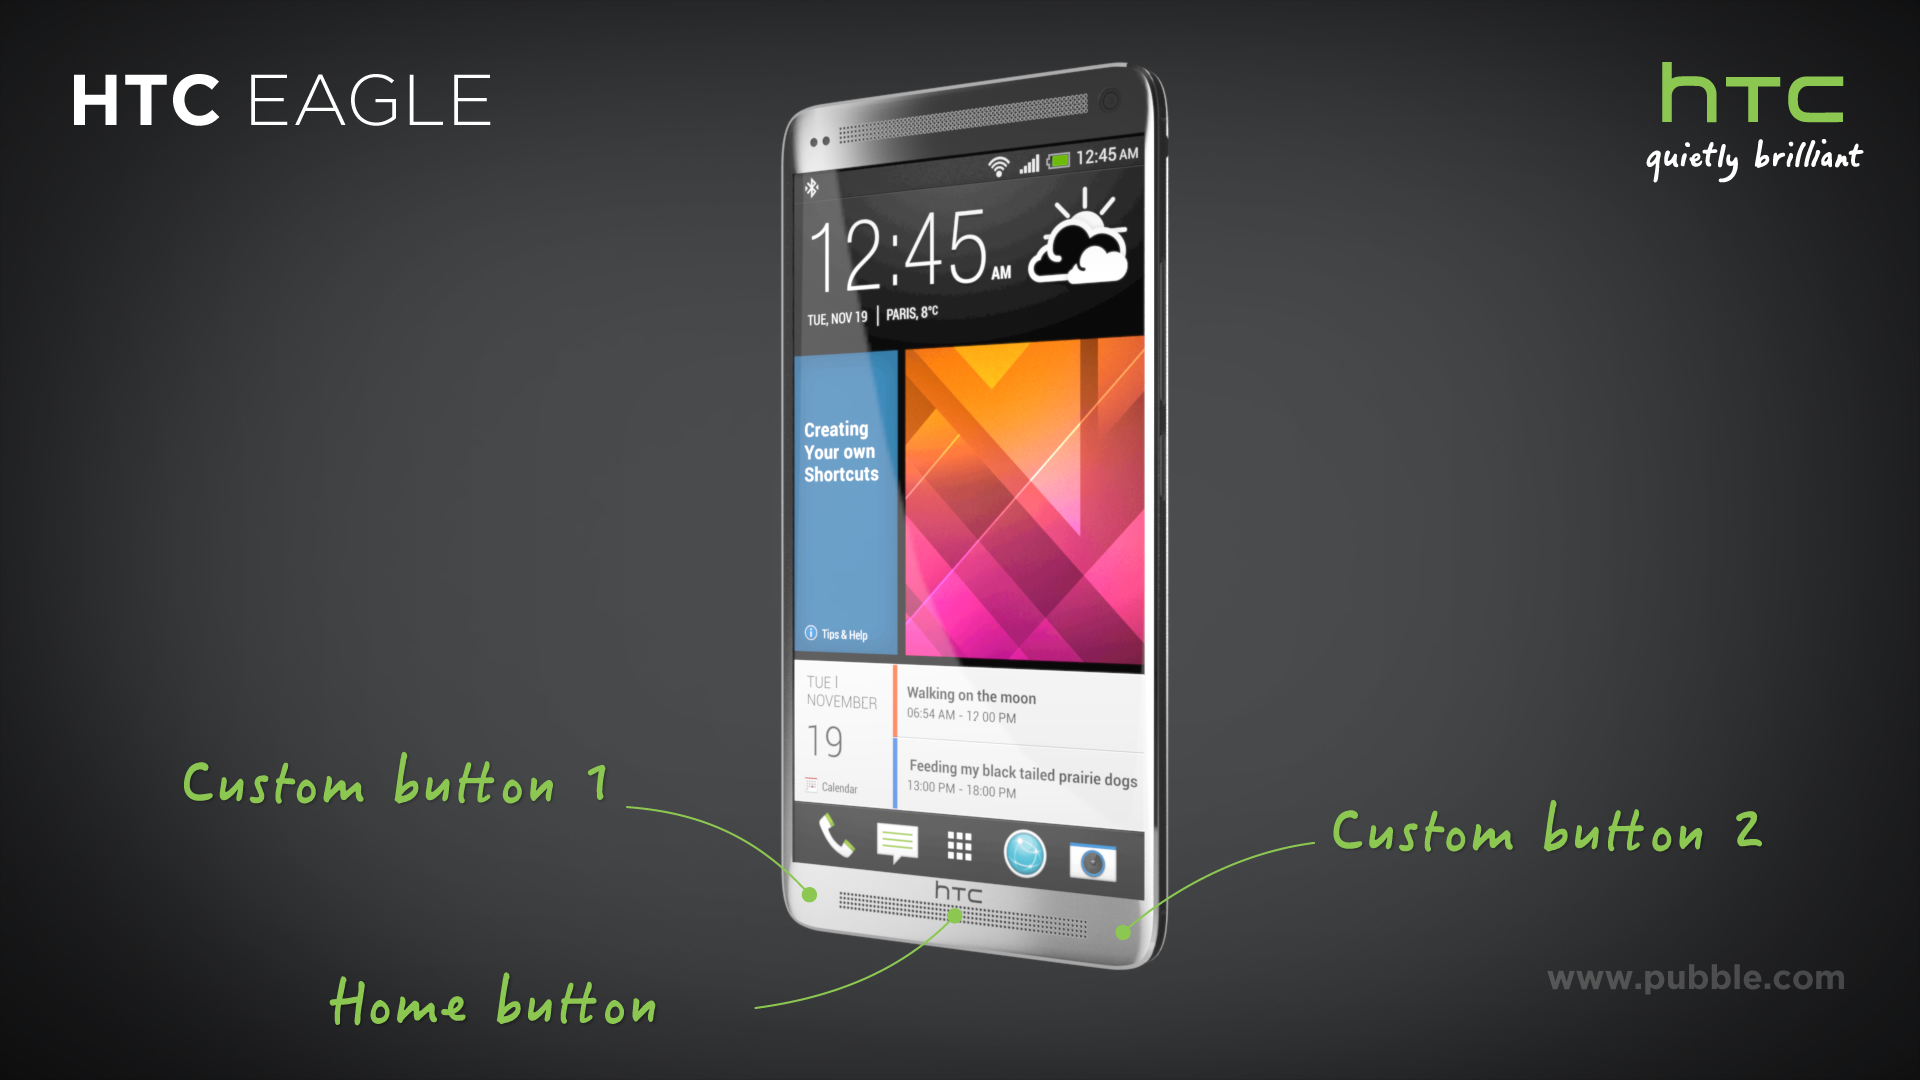 HTC Eagle - Buttons